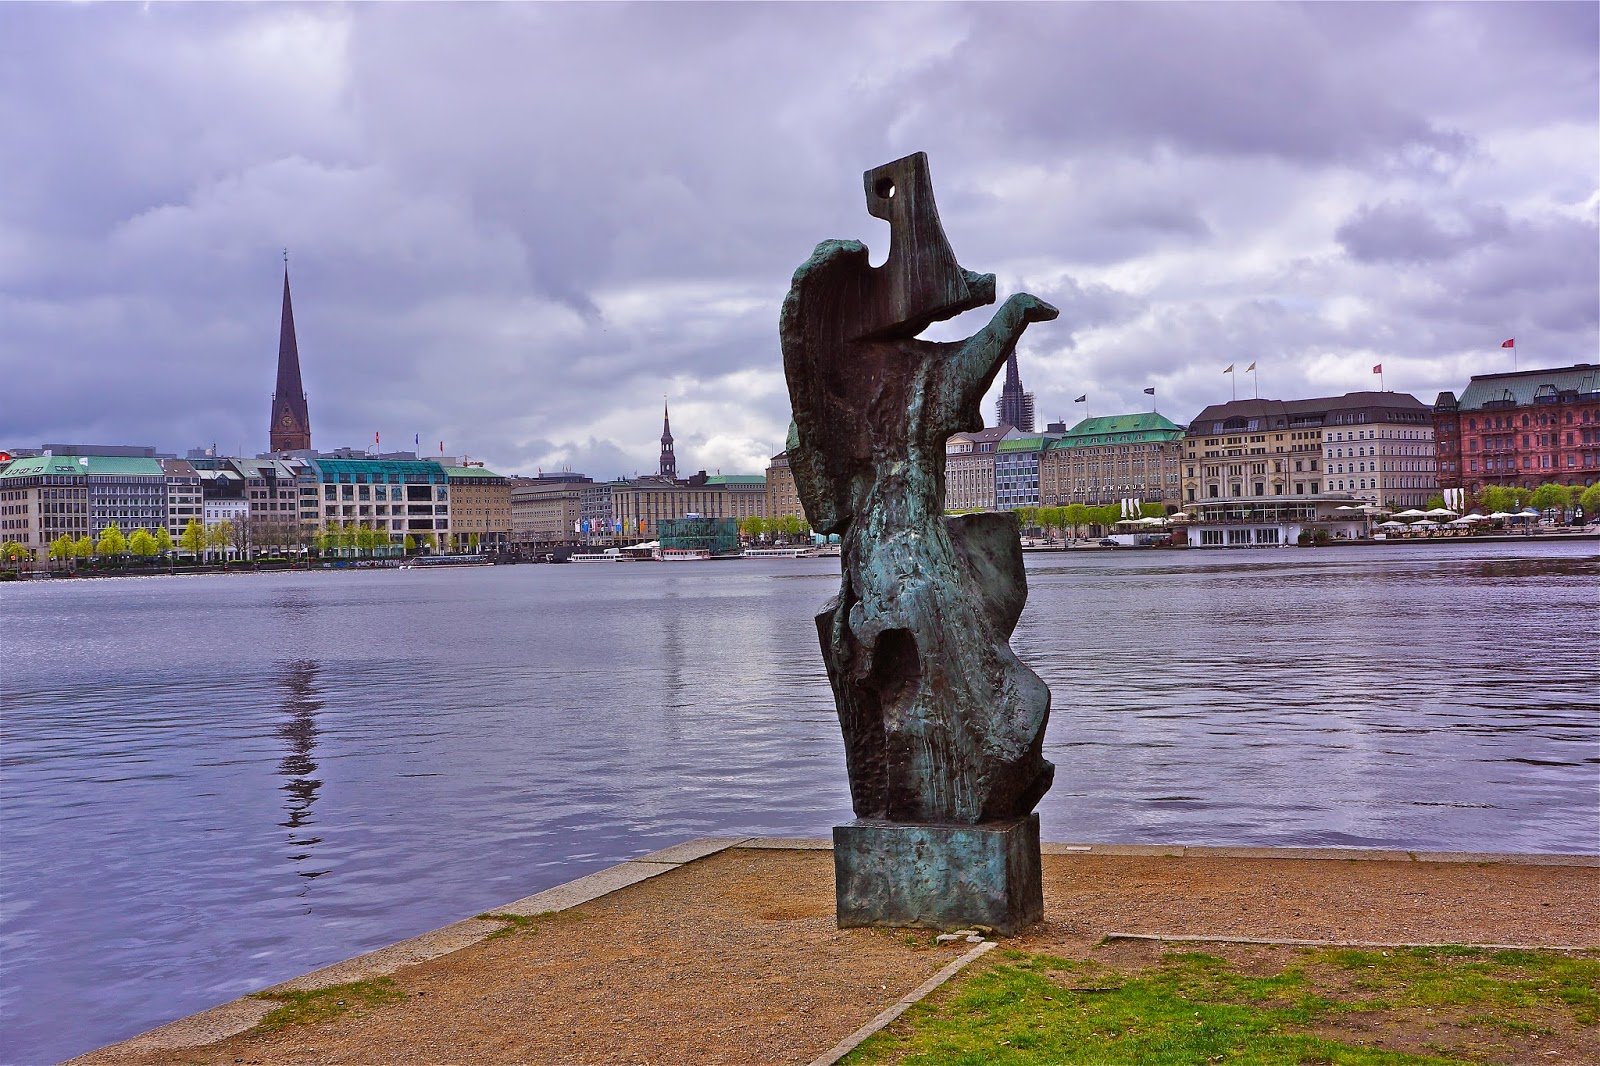 Picture of lake Alster in Hamburg, Germany.